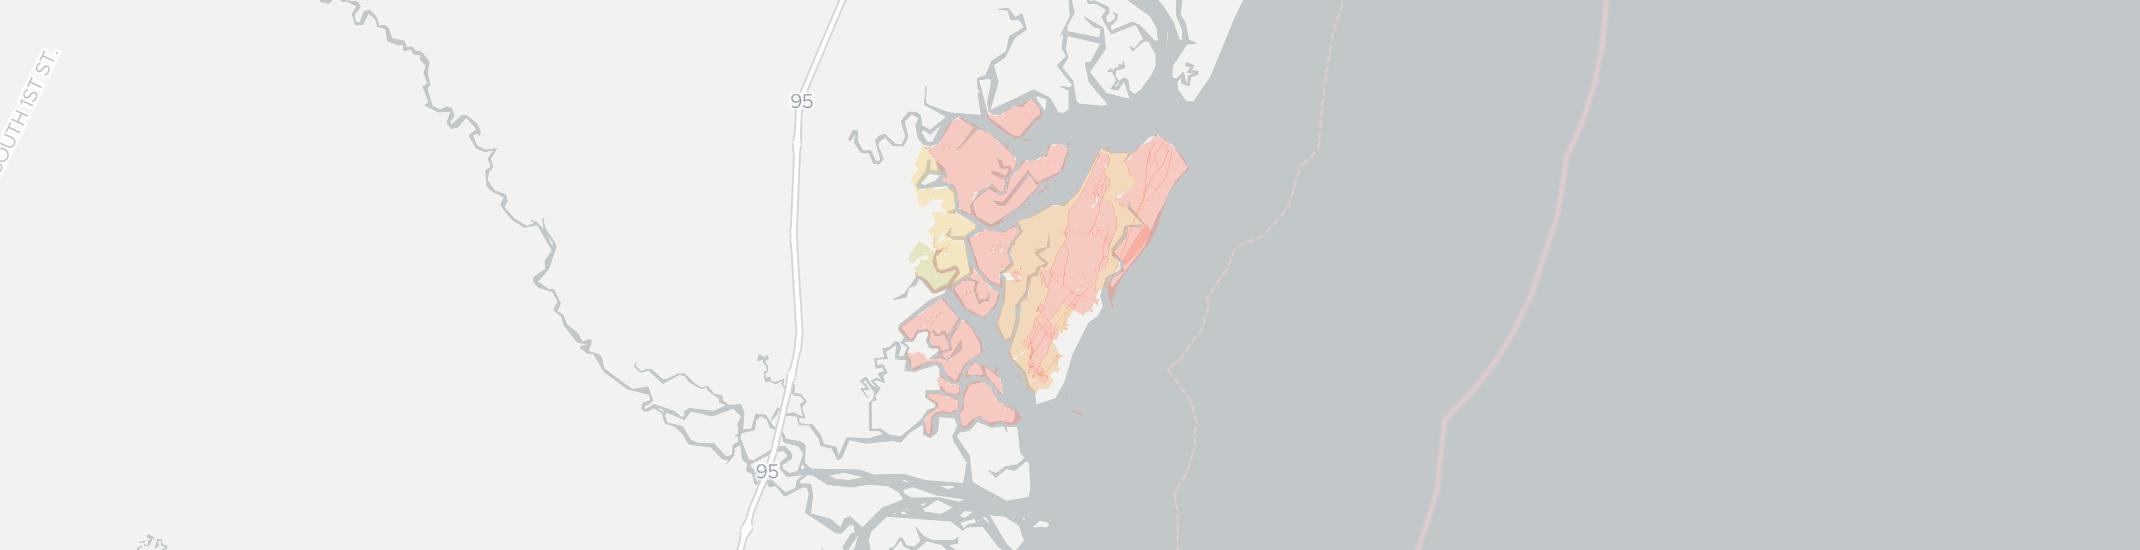 Sapelo Island Internet Competition Map. Click for interactive map.